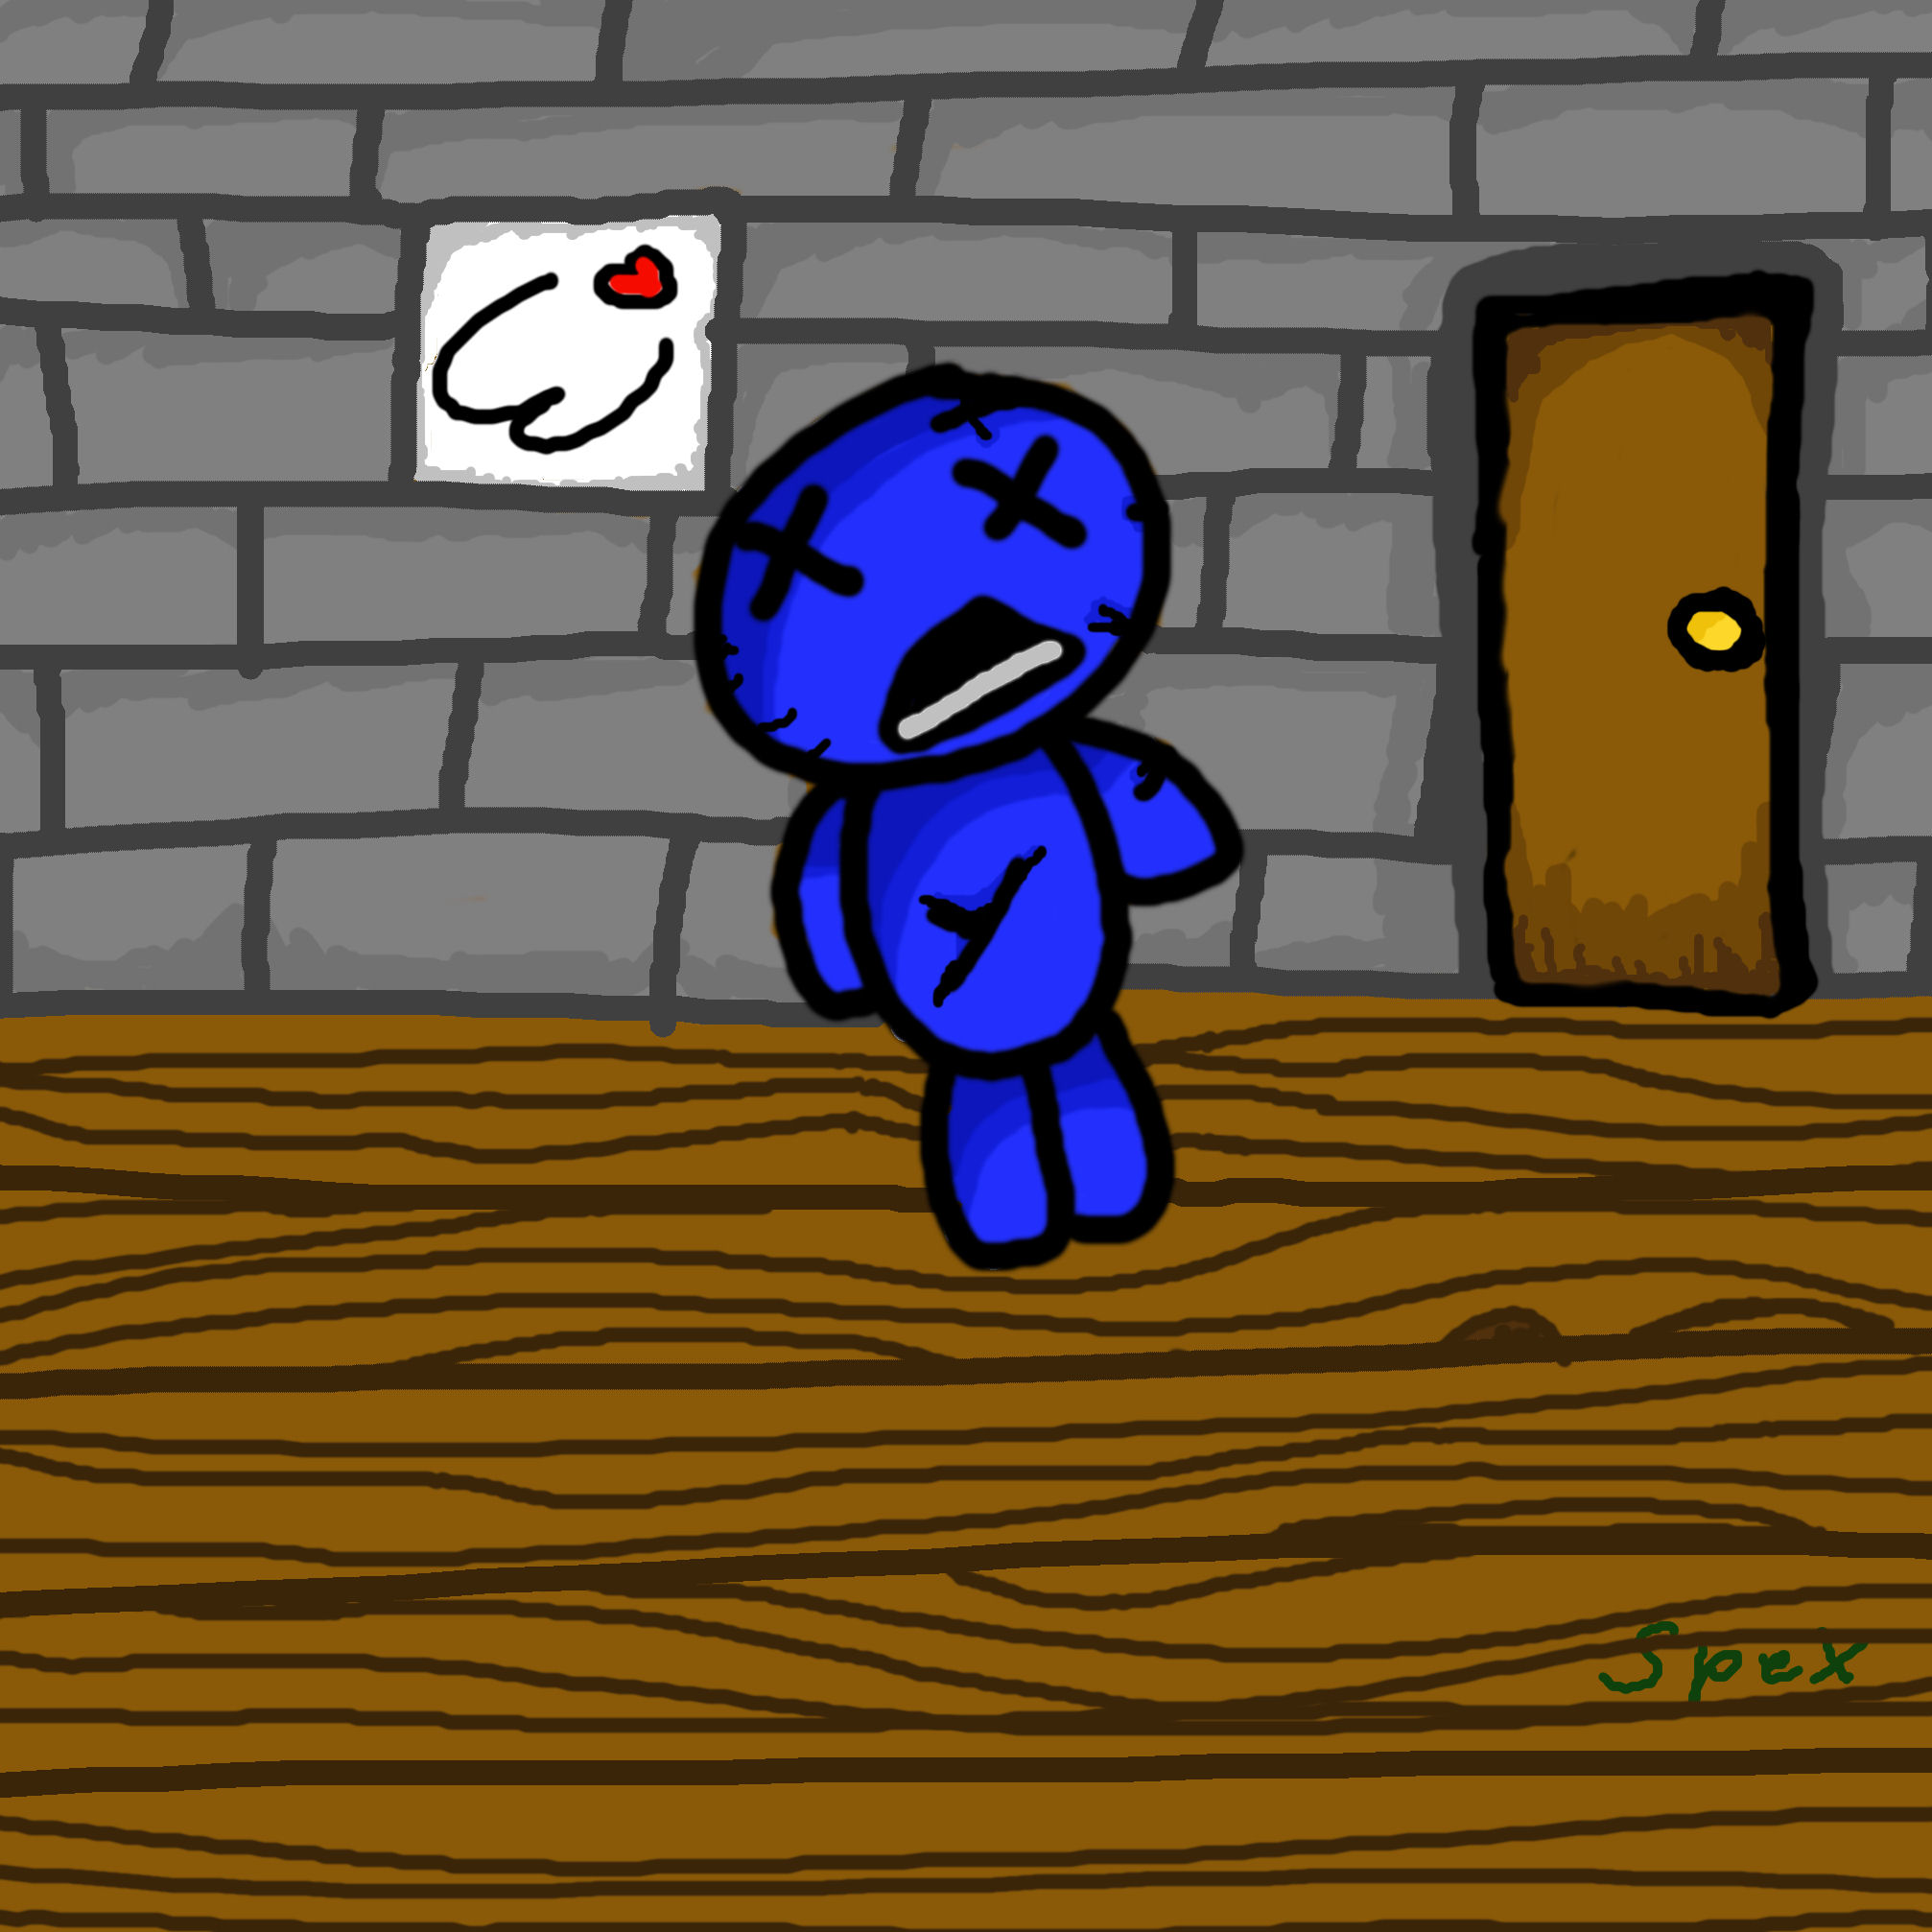 Binding Of Isaac ??? Blue Baby By Spexguy On Newgrounds